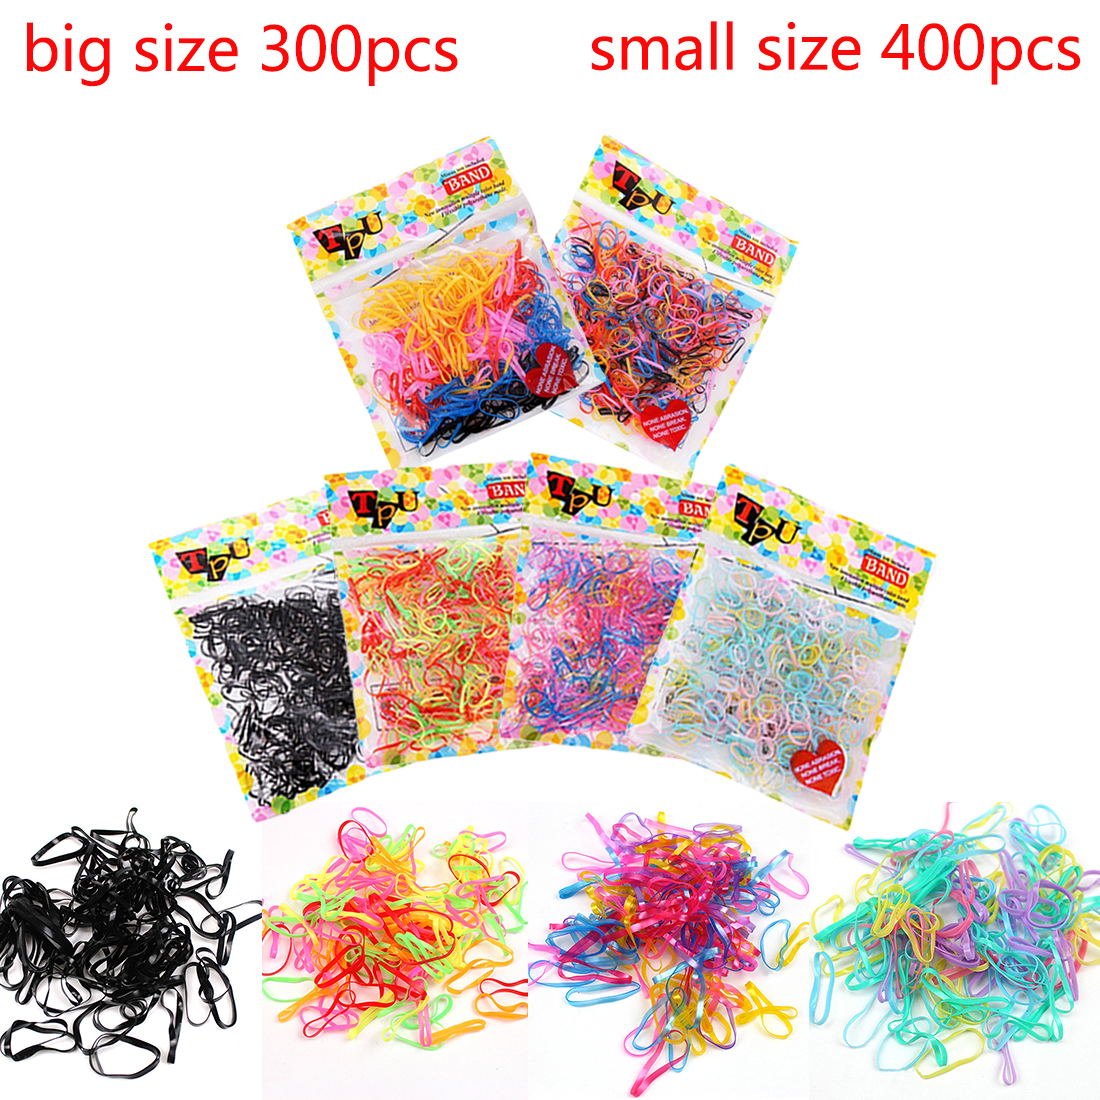 300-400pcs/lot Candy Color Elastic Hair Bands Headwear Hair Ring Ropes Ponytail Holder One-off for Girls Hair Accessories 50pcs korean candy color headwear hair ring ropes ponytail holder disposable elastic hair bands for girls hair accessories